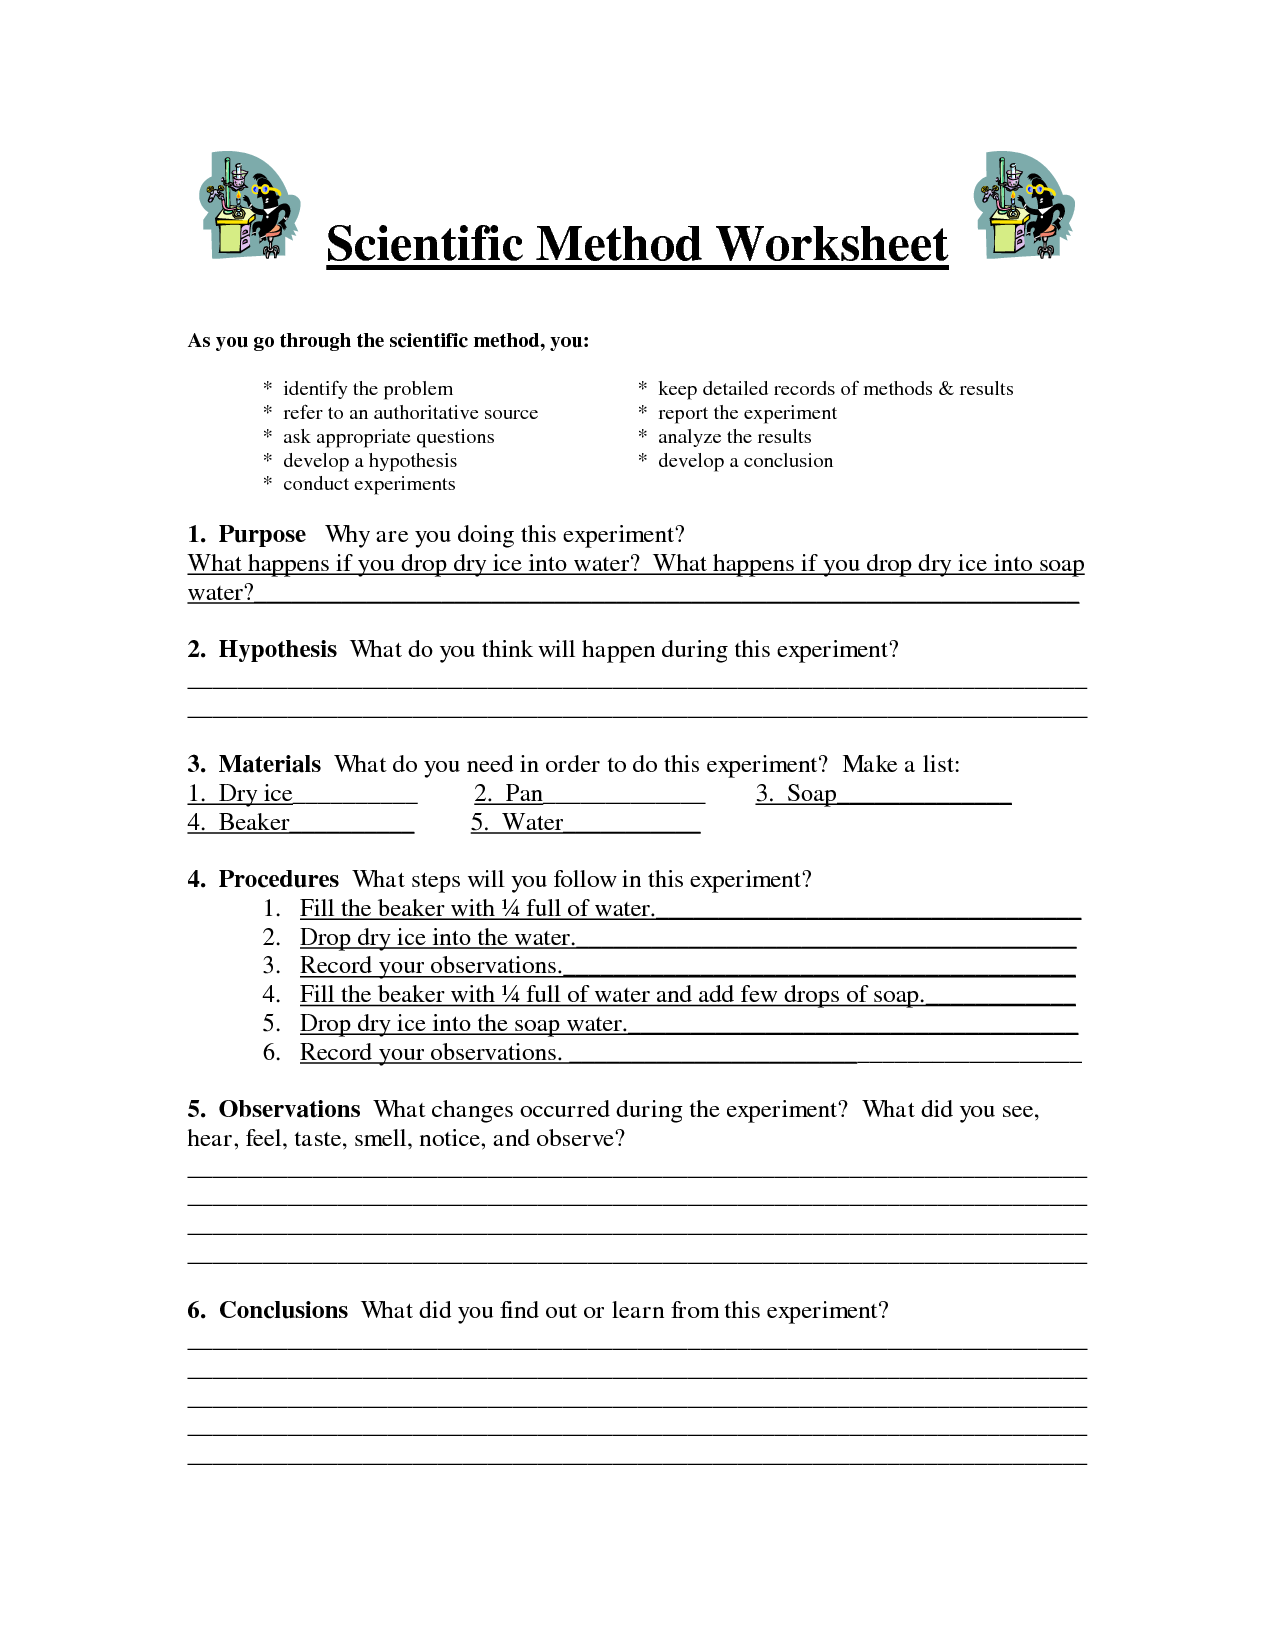 Worksheet Scientific Method Worksheet Middle School Grass Fedjp Worksheet Study Site